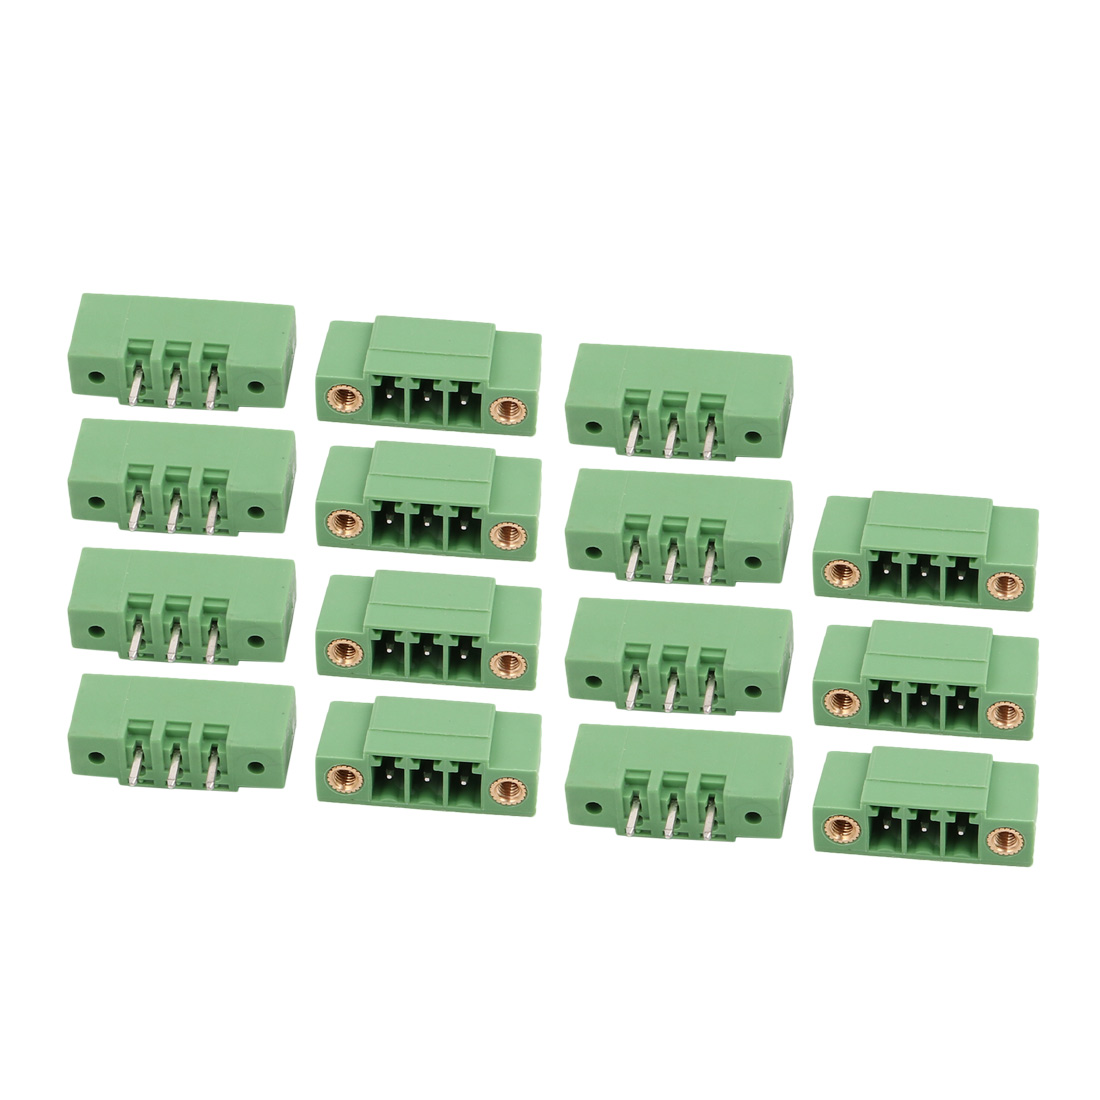 15Pcs AC 300V 8A 3.81mm Pitch 3P Terminals Block Wire Connecting f PCB Mounting